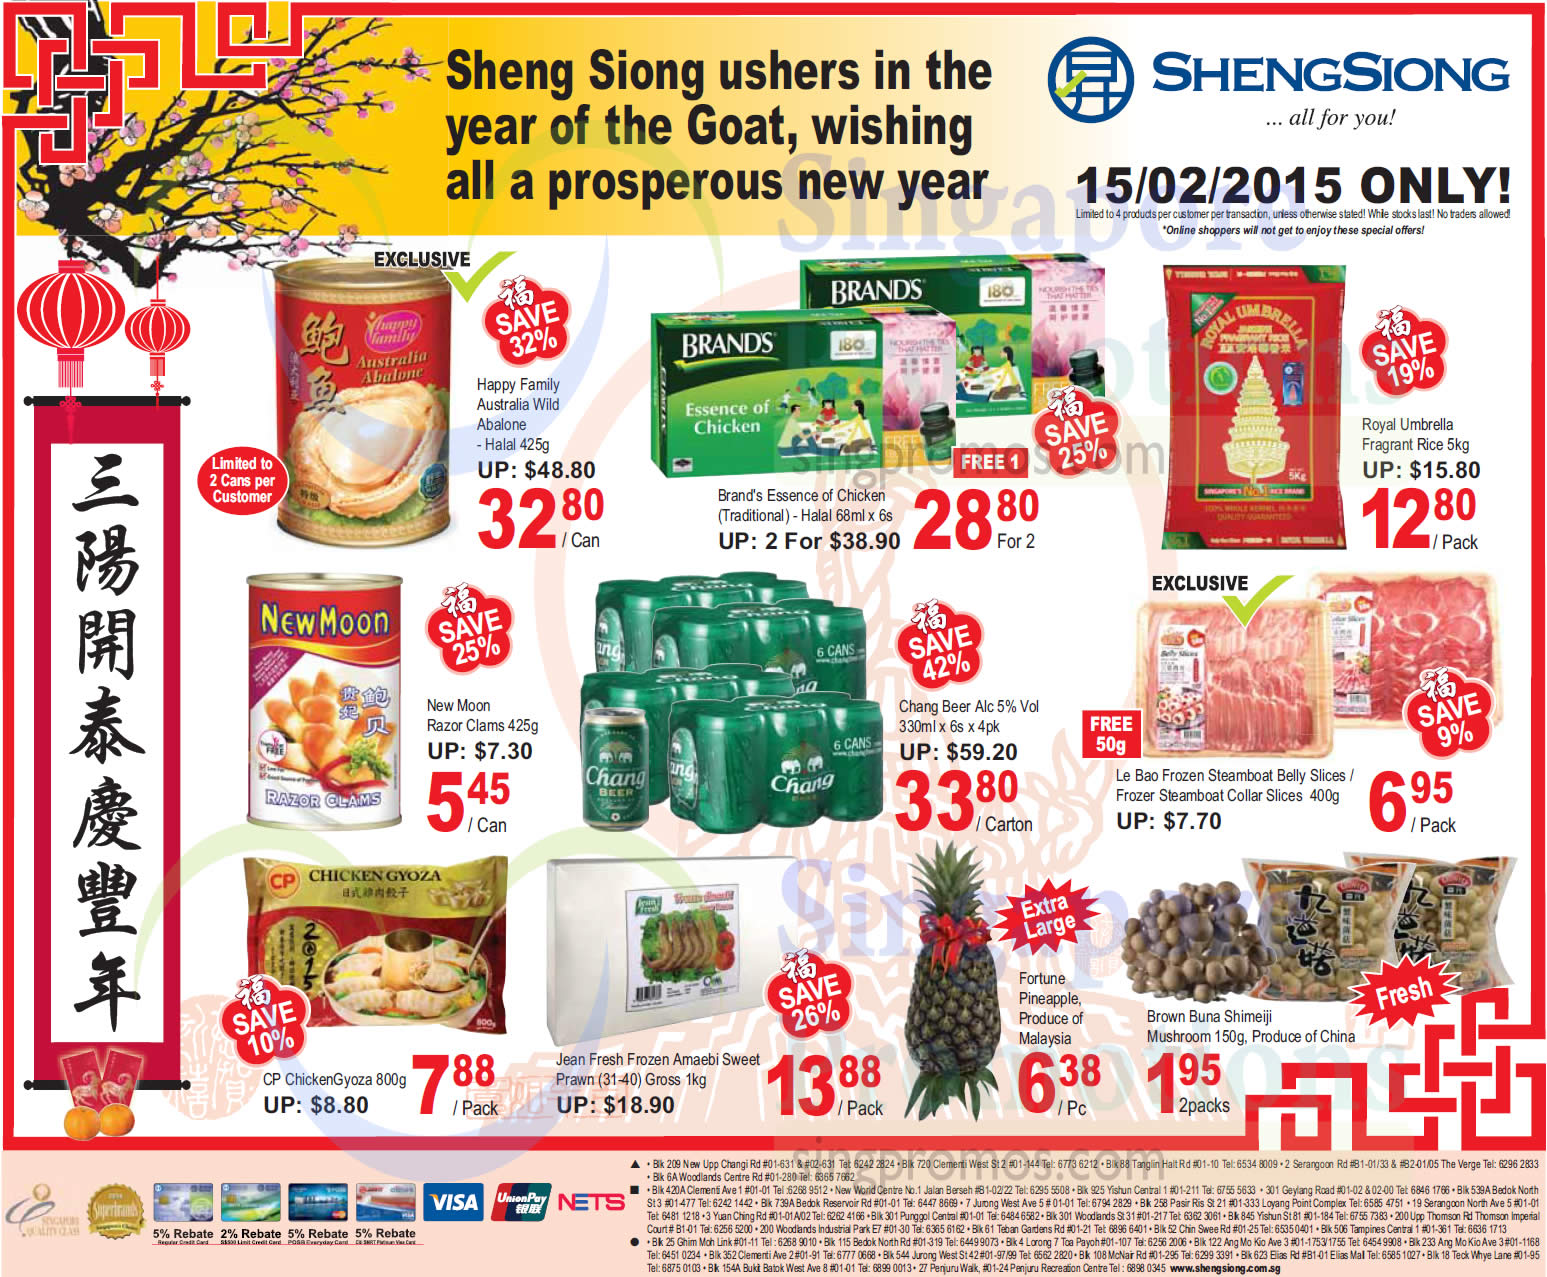 Sheng Siong Happy Family Abalone Brand S Essence Of